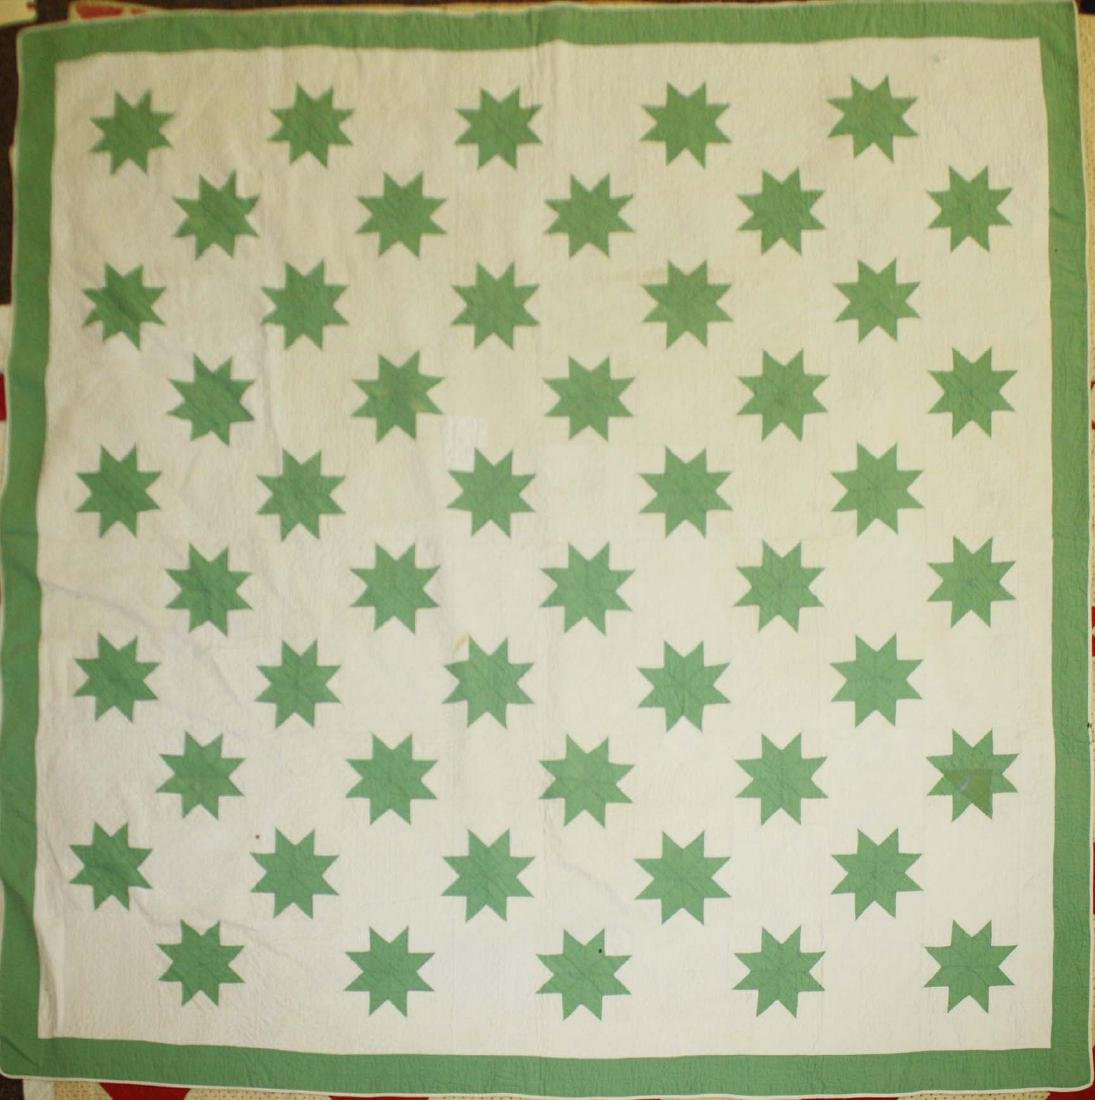 early 20th c green & white star pattern quilt - 2